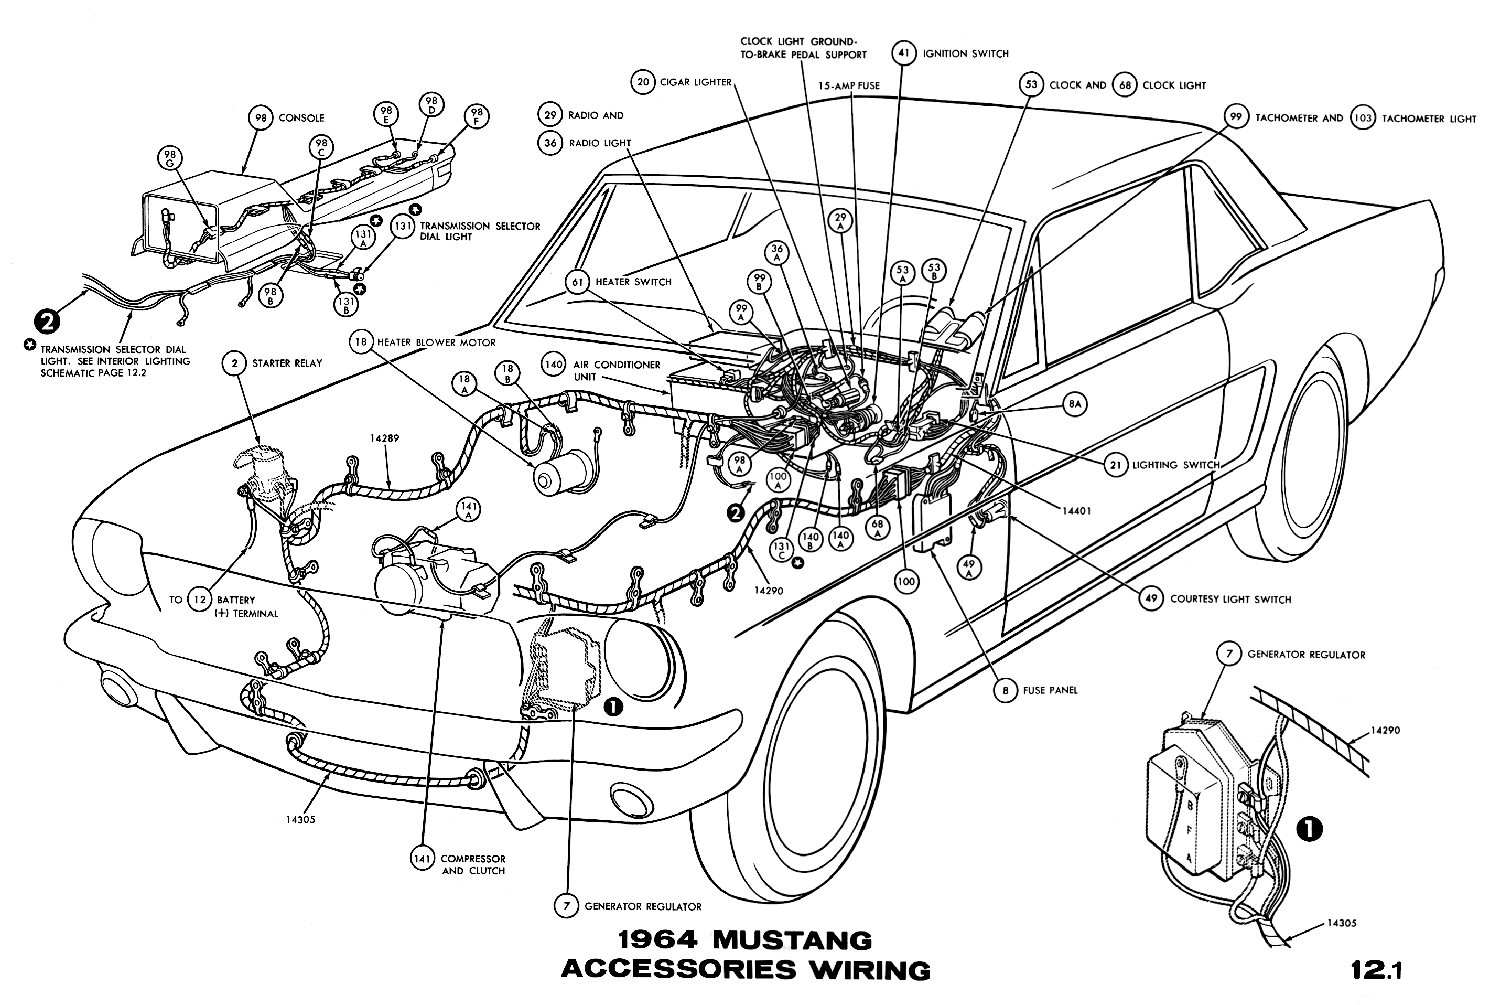 1967 Ford Mustang Fuse Box Wiring Diagrams How To Wire A 53 Starter Solenoid Diagram 1965 Upgrade Database U2022 Rh Mokadesign Co Location 98